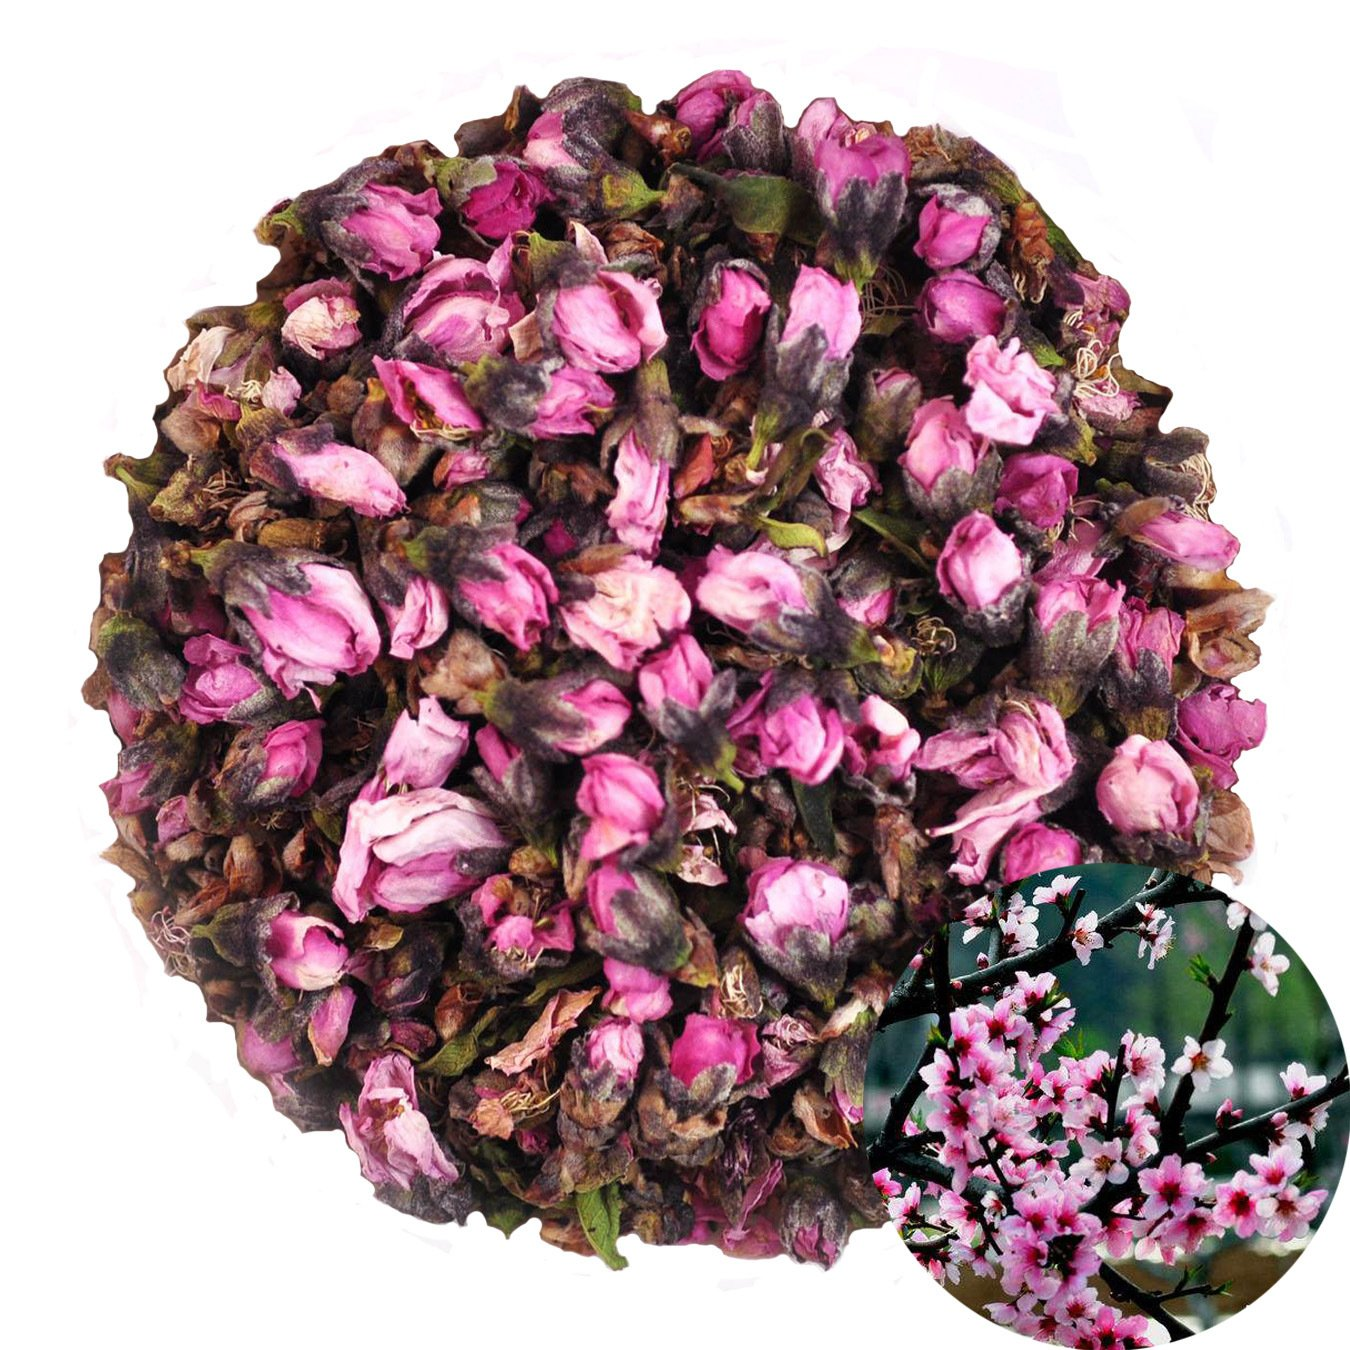 Peach Flowers Tea Botanicals Dried Peach Blossom Bud Crafts Candle Soap Bath